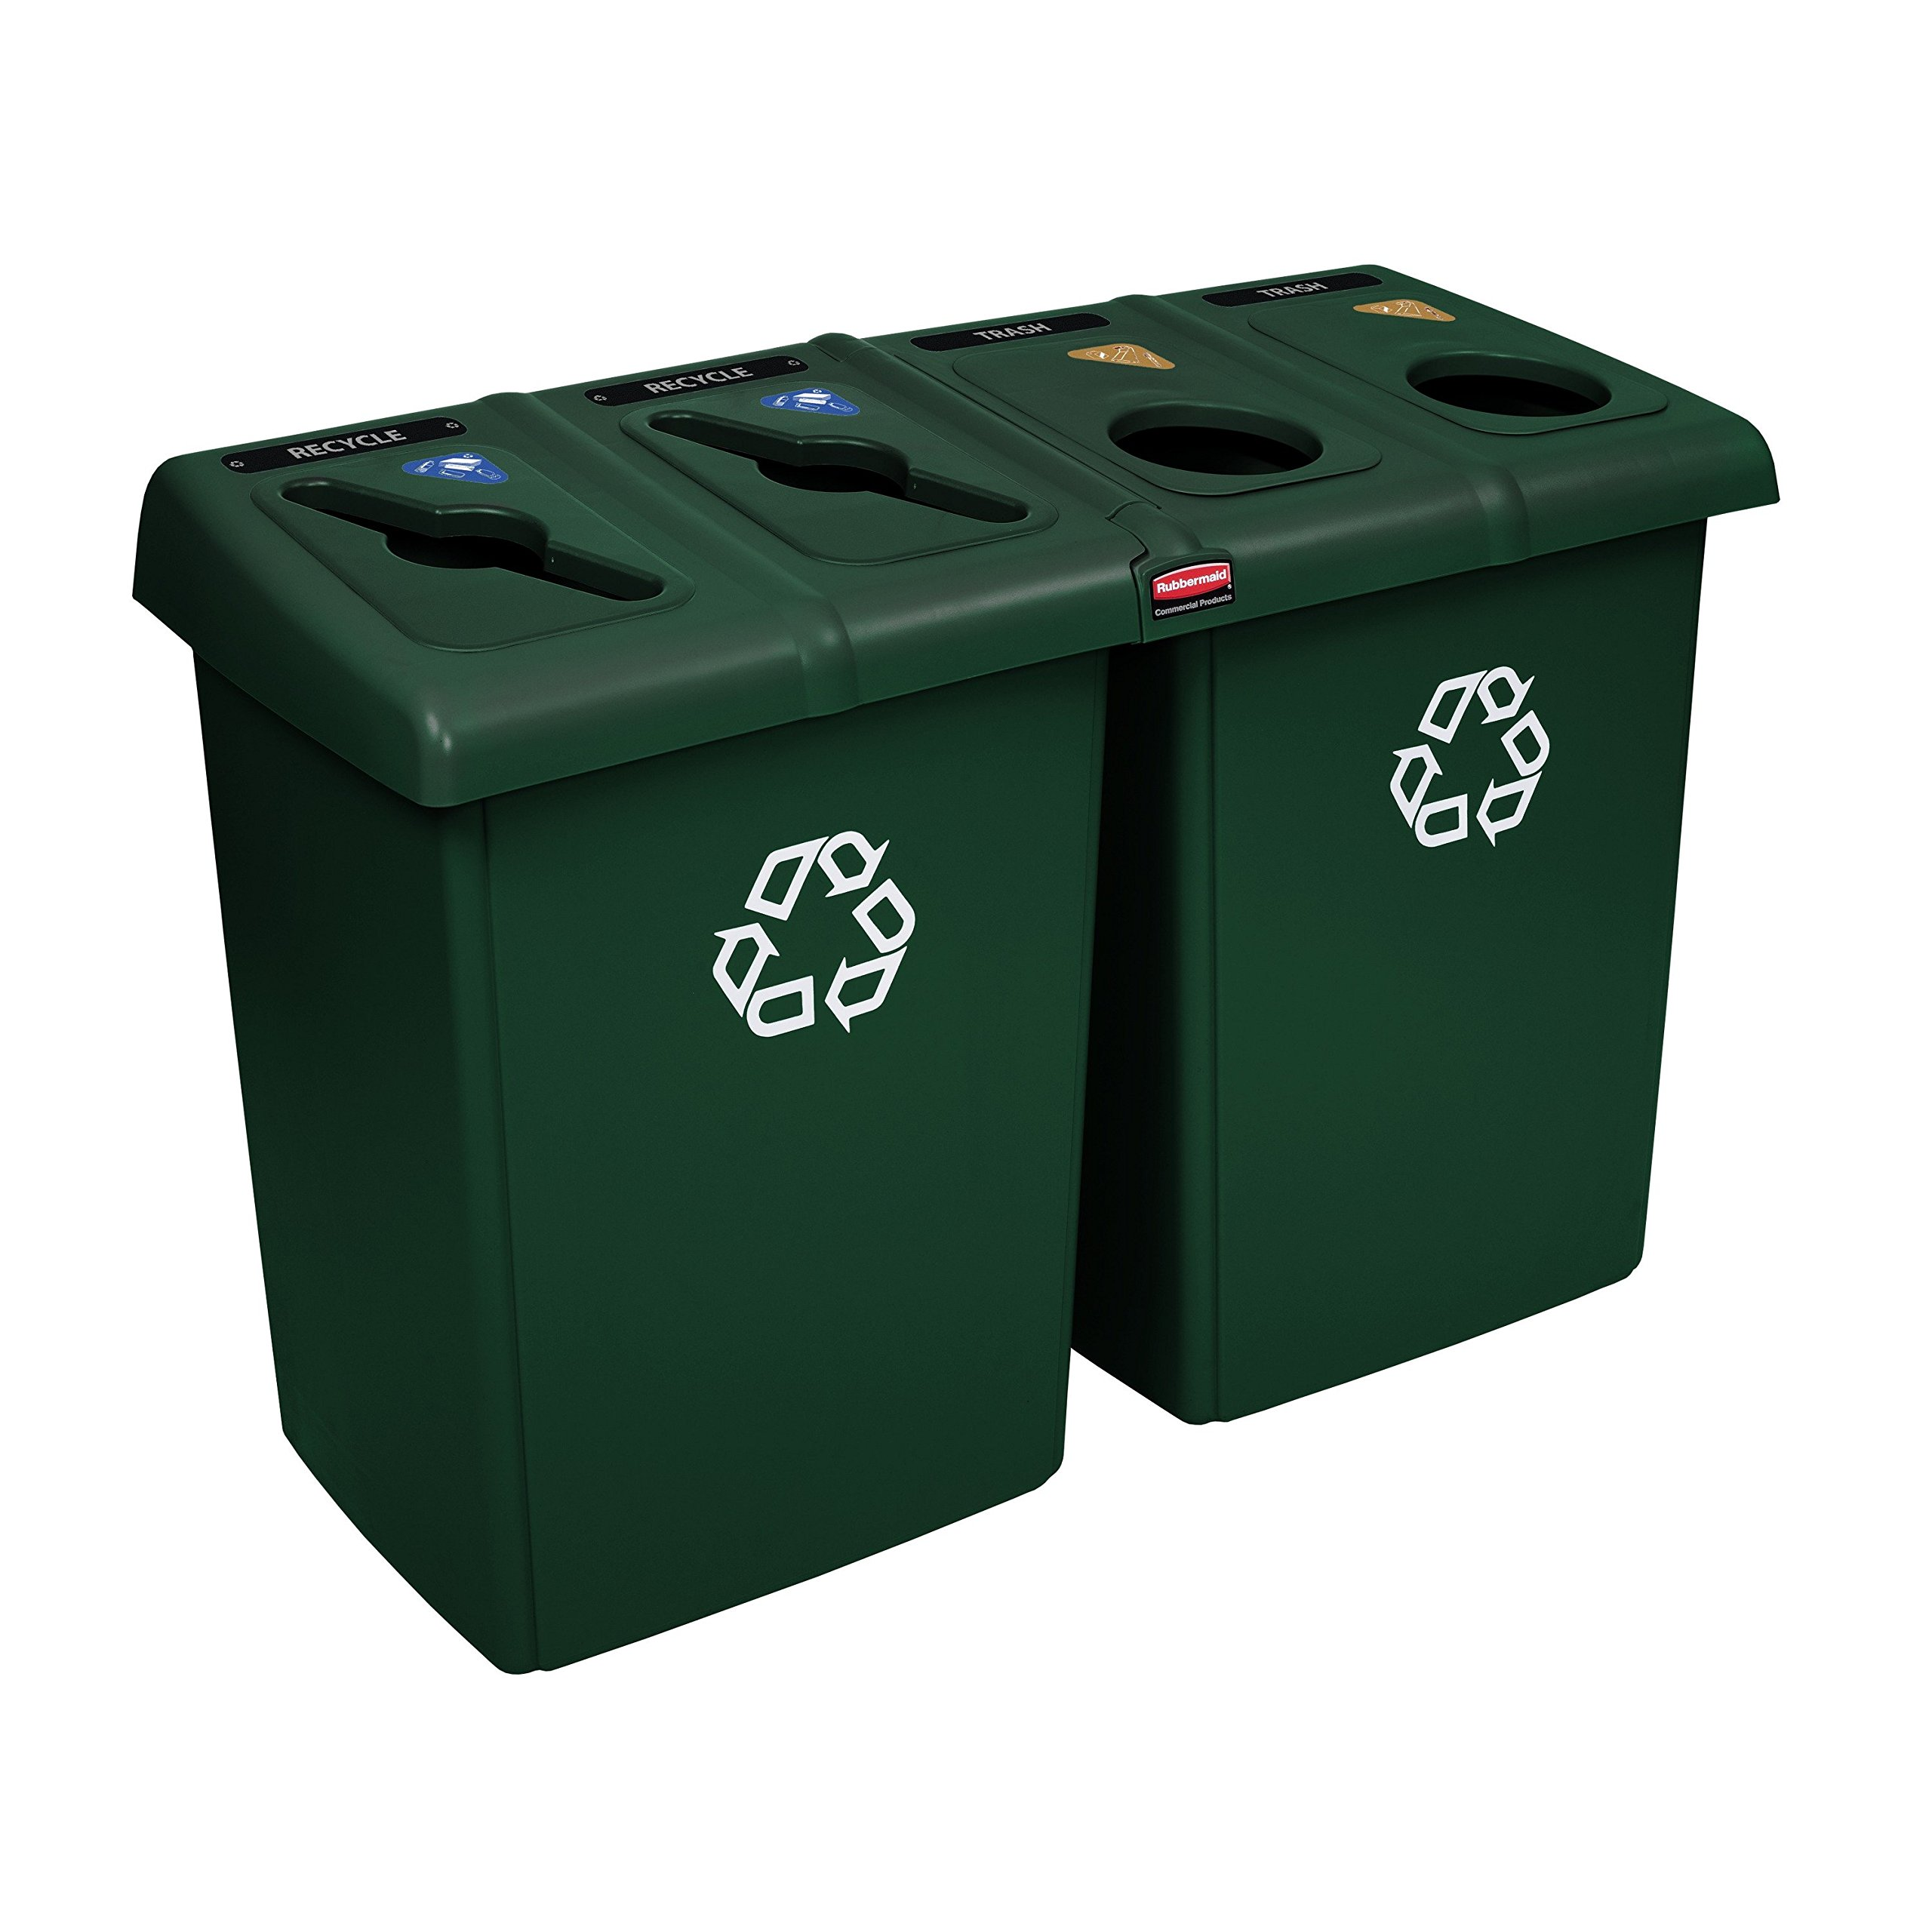 Rubbermaid Commercial 1792373 Glutton Recycling Staion, 4-Stream, Green, Color/Style